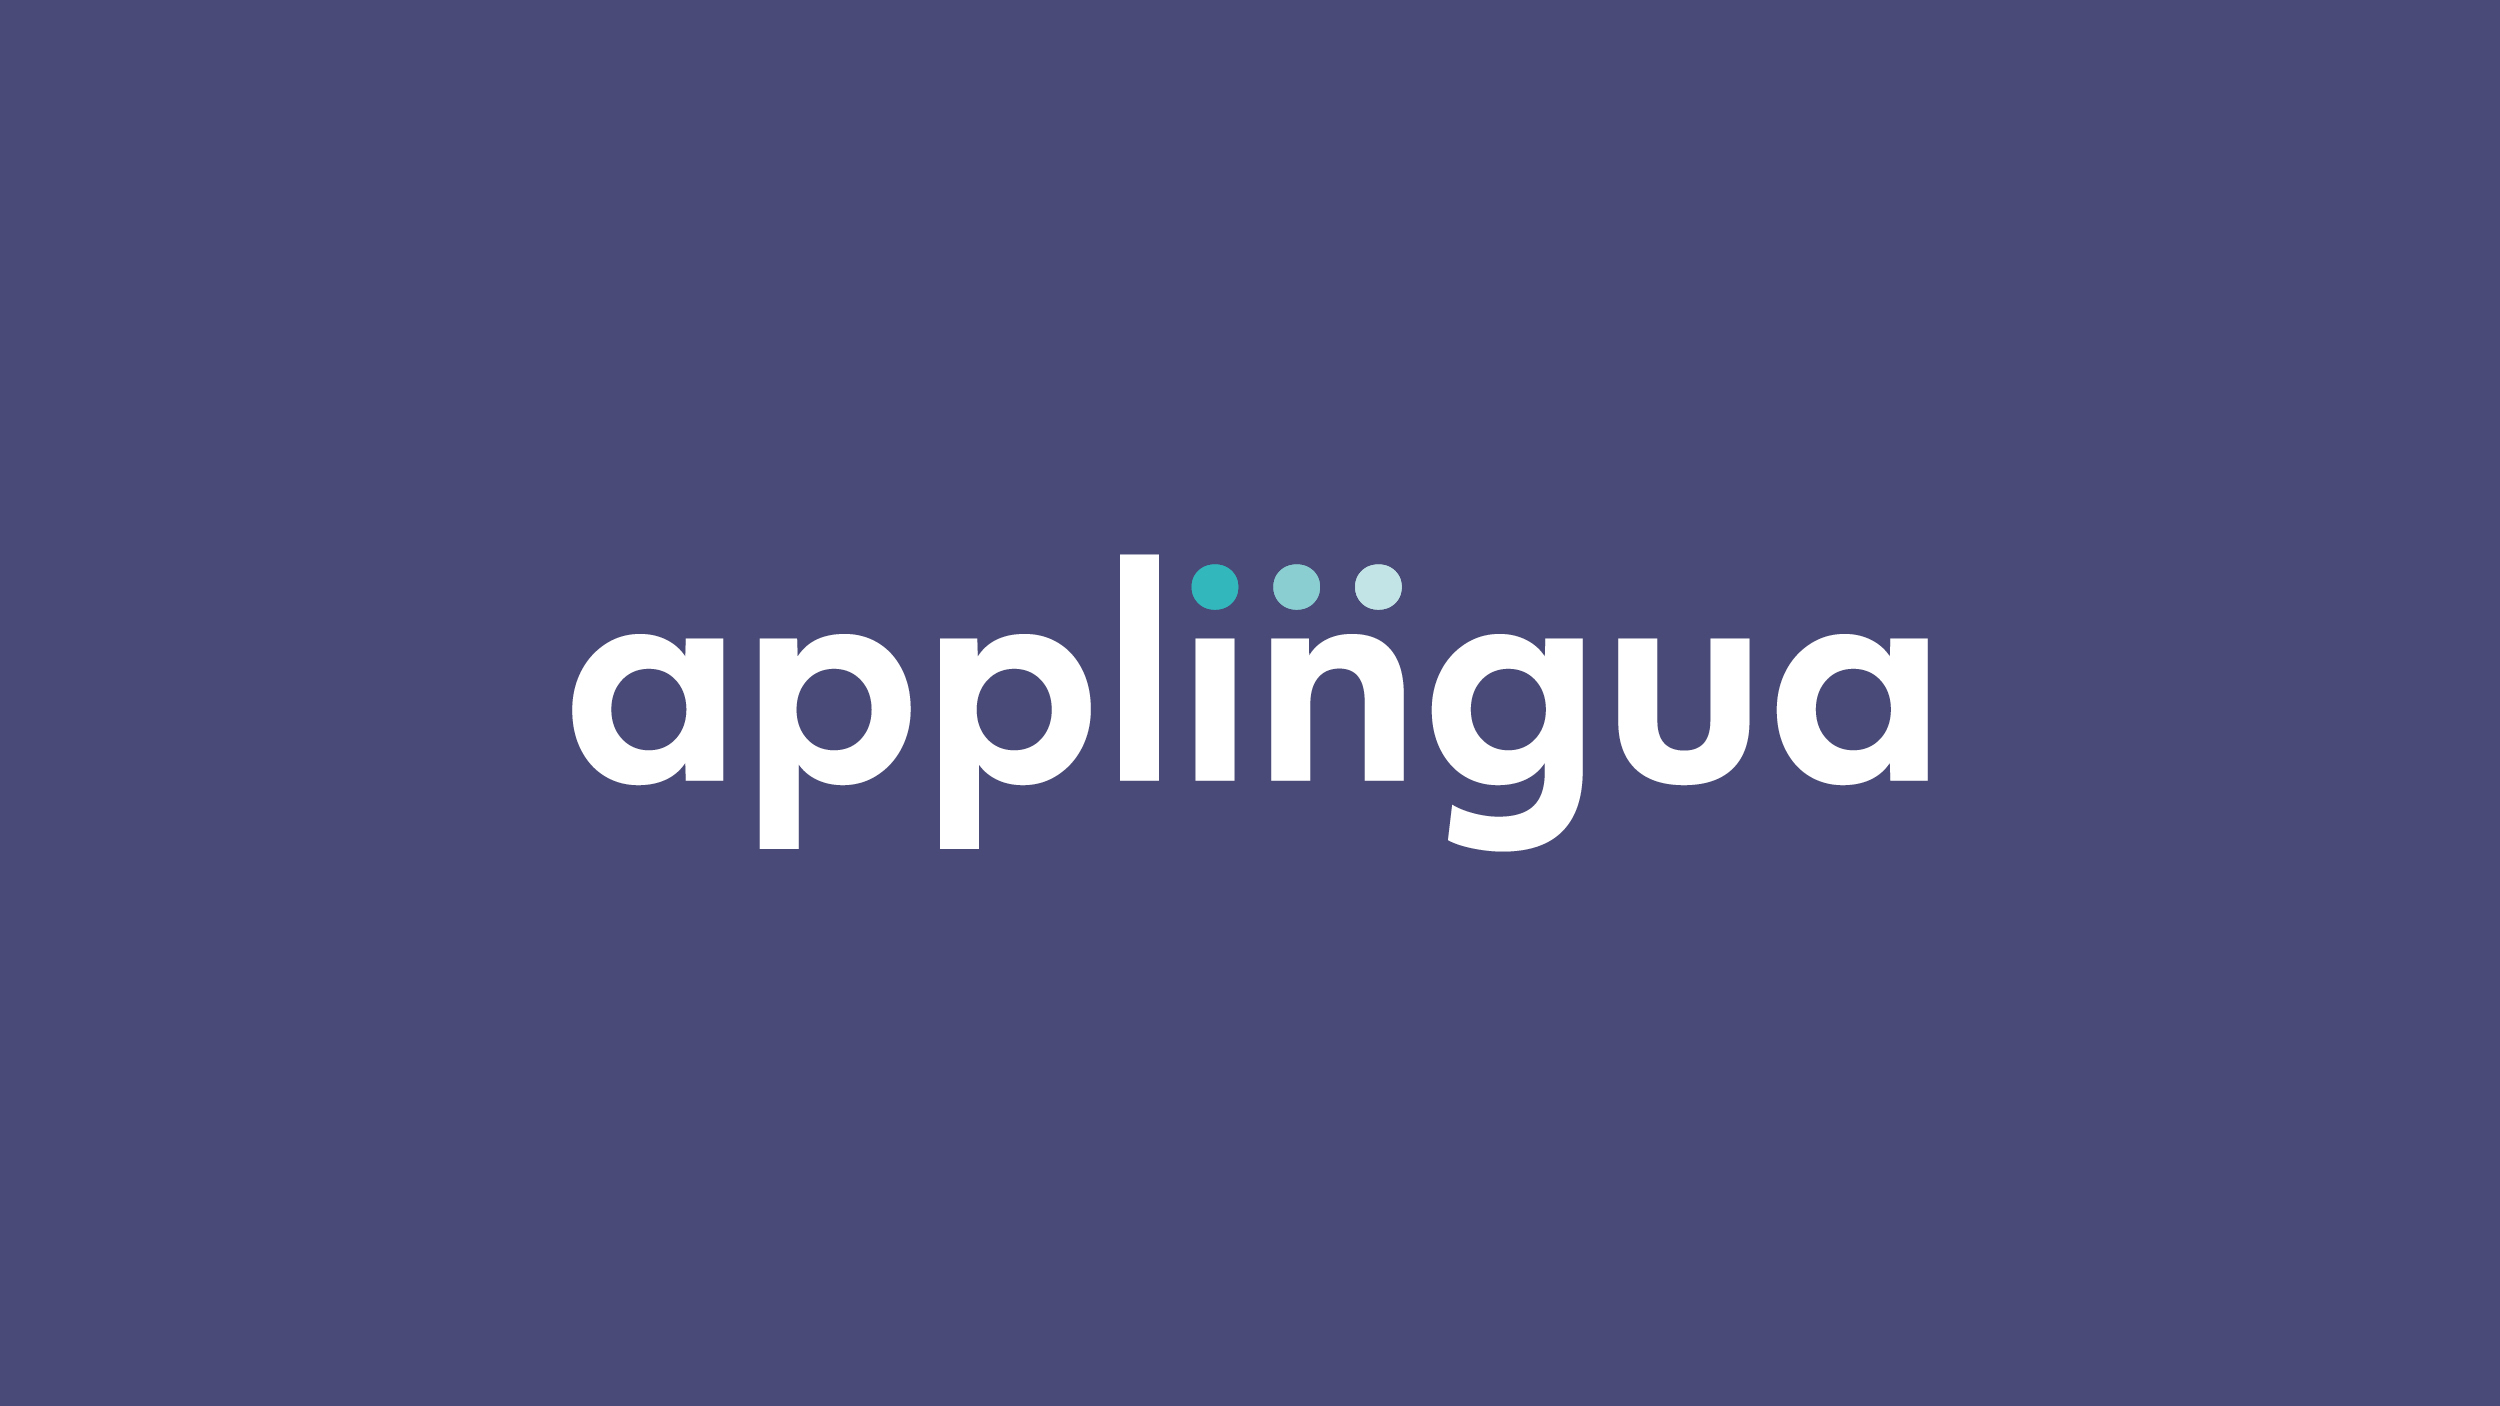 applingua-branding-illustration.jpg